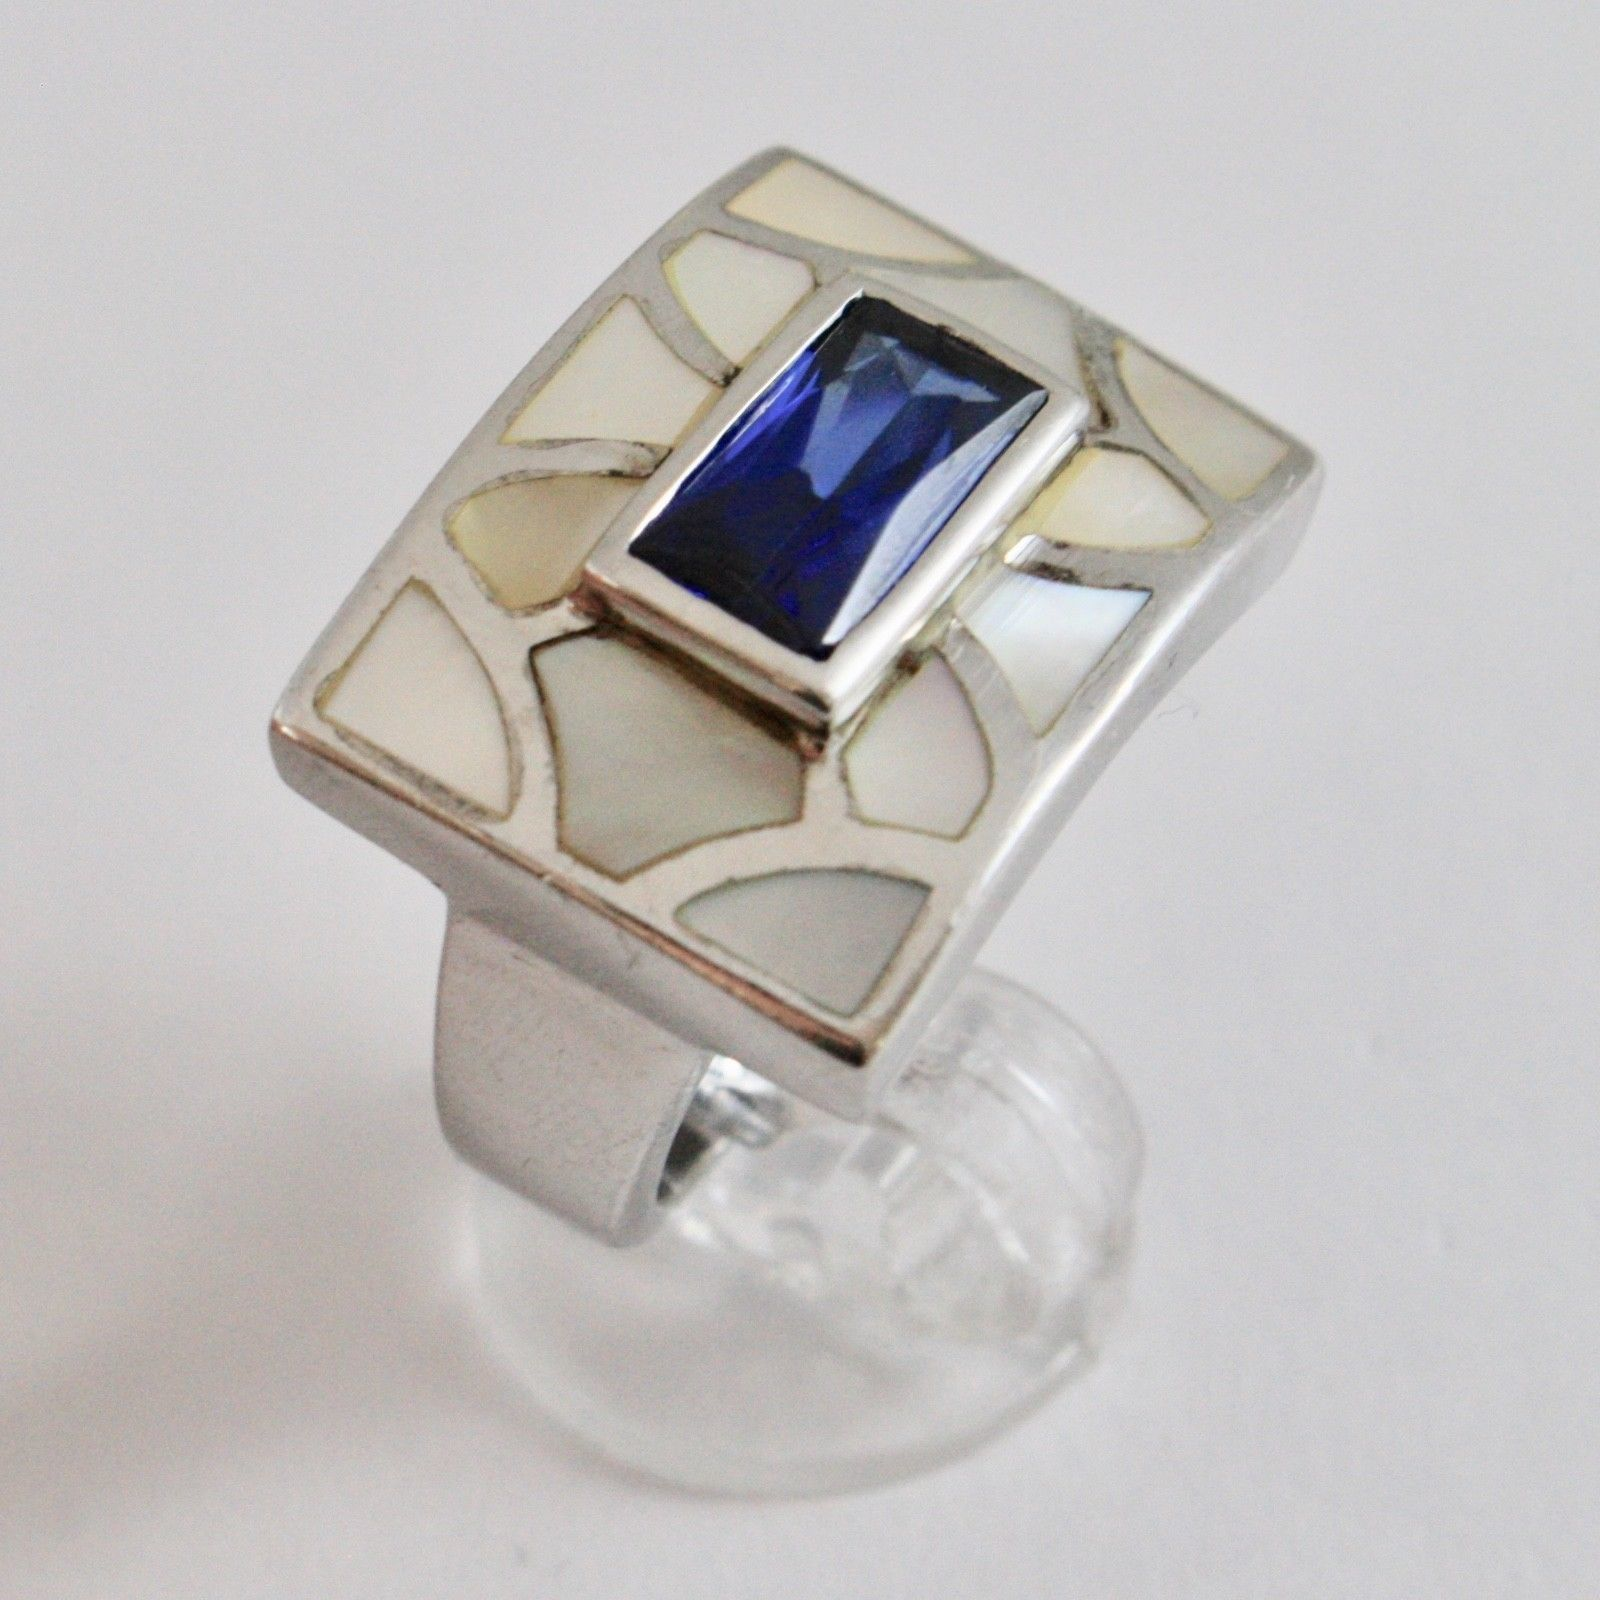 925 SILVER RING RHODIUM WITH NACRE WHITE AND CRYSTAL BLUE RECTANGULAR